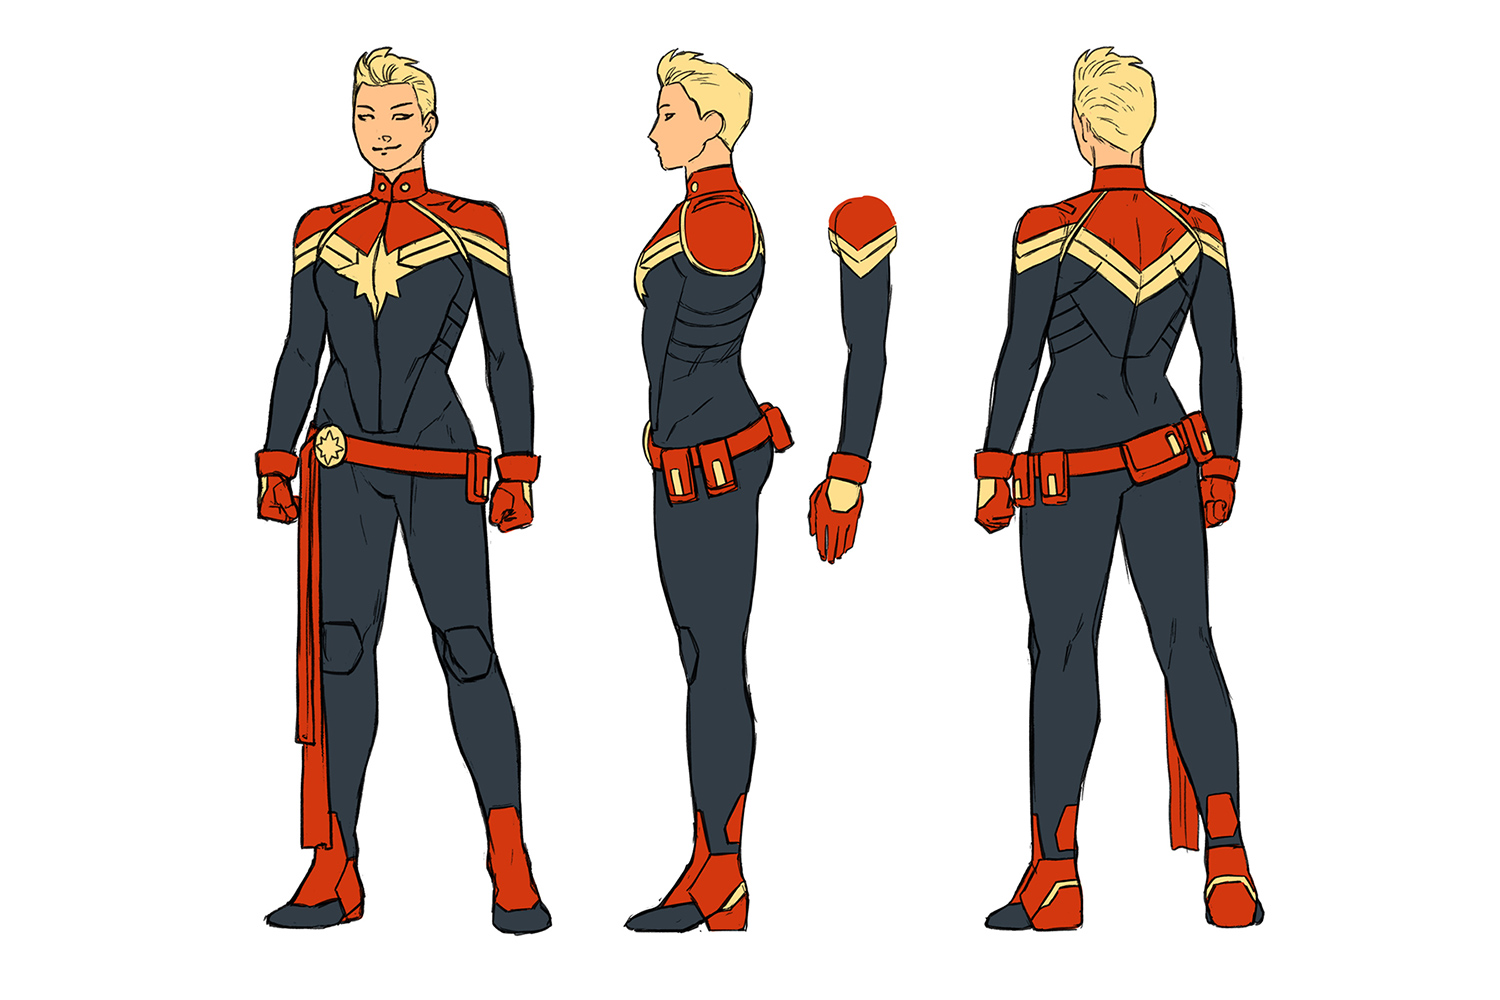 3047641-slide-s-3-first-look-at-the-new-captain-marvel-written-by-agent-carter-showrunner.jpg